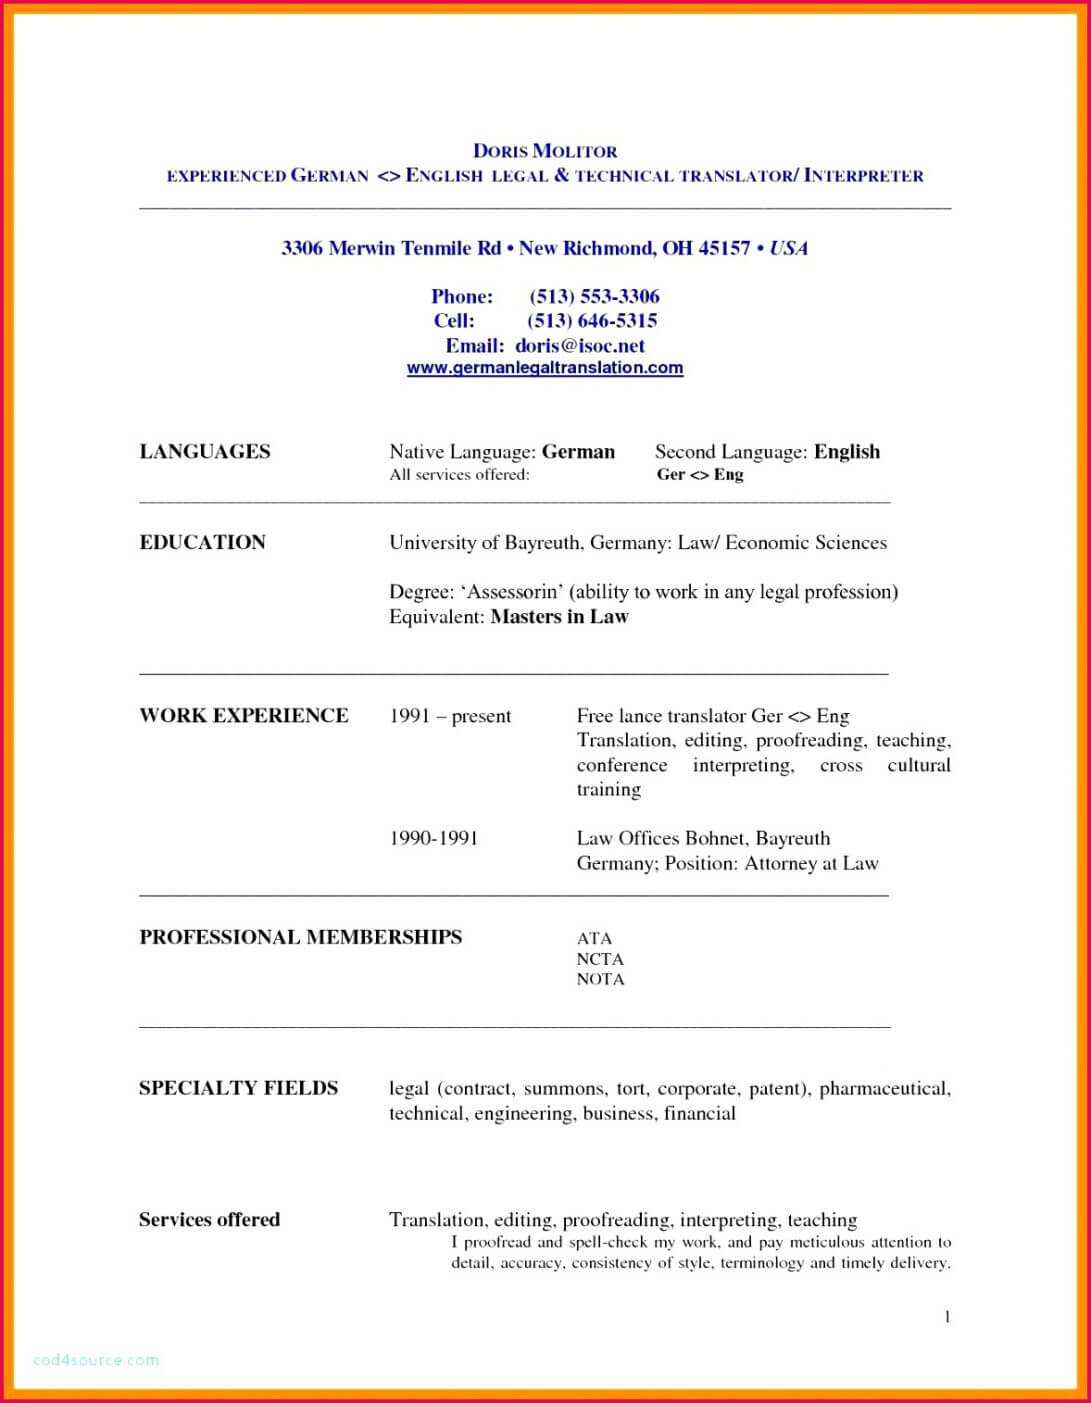 Translate Mexican Birth Certificate To English Template with Uscis Birth Certificate Translation Template